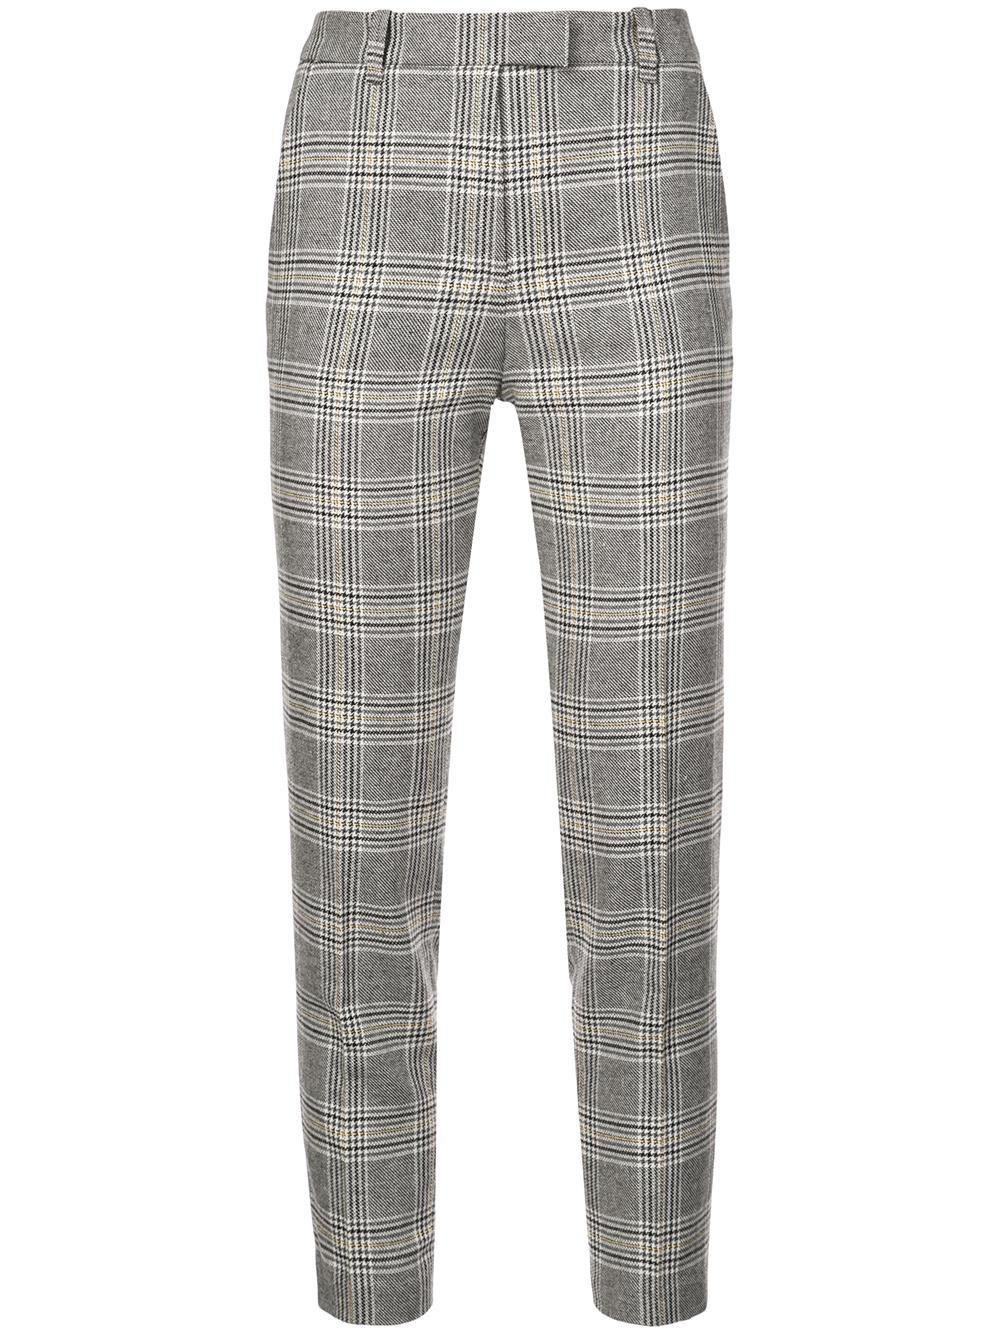 Plaid Slim Pant Item # S1611SEF